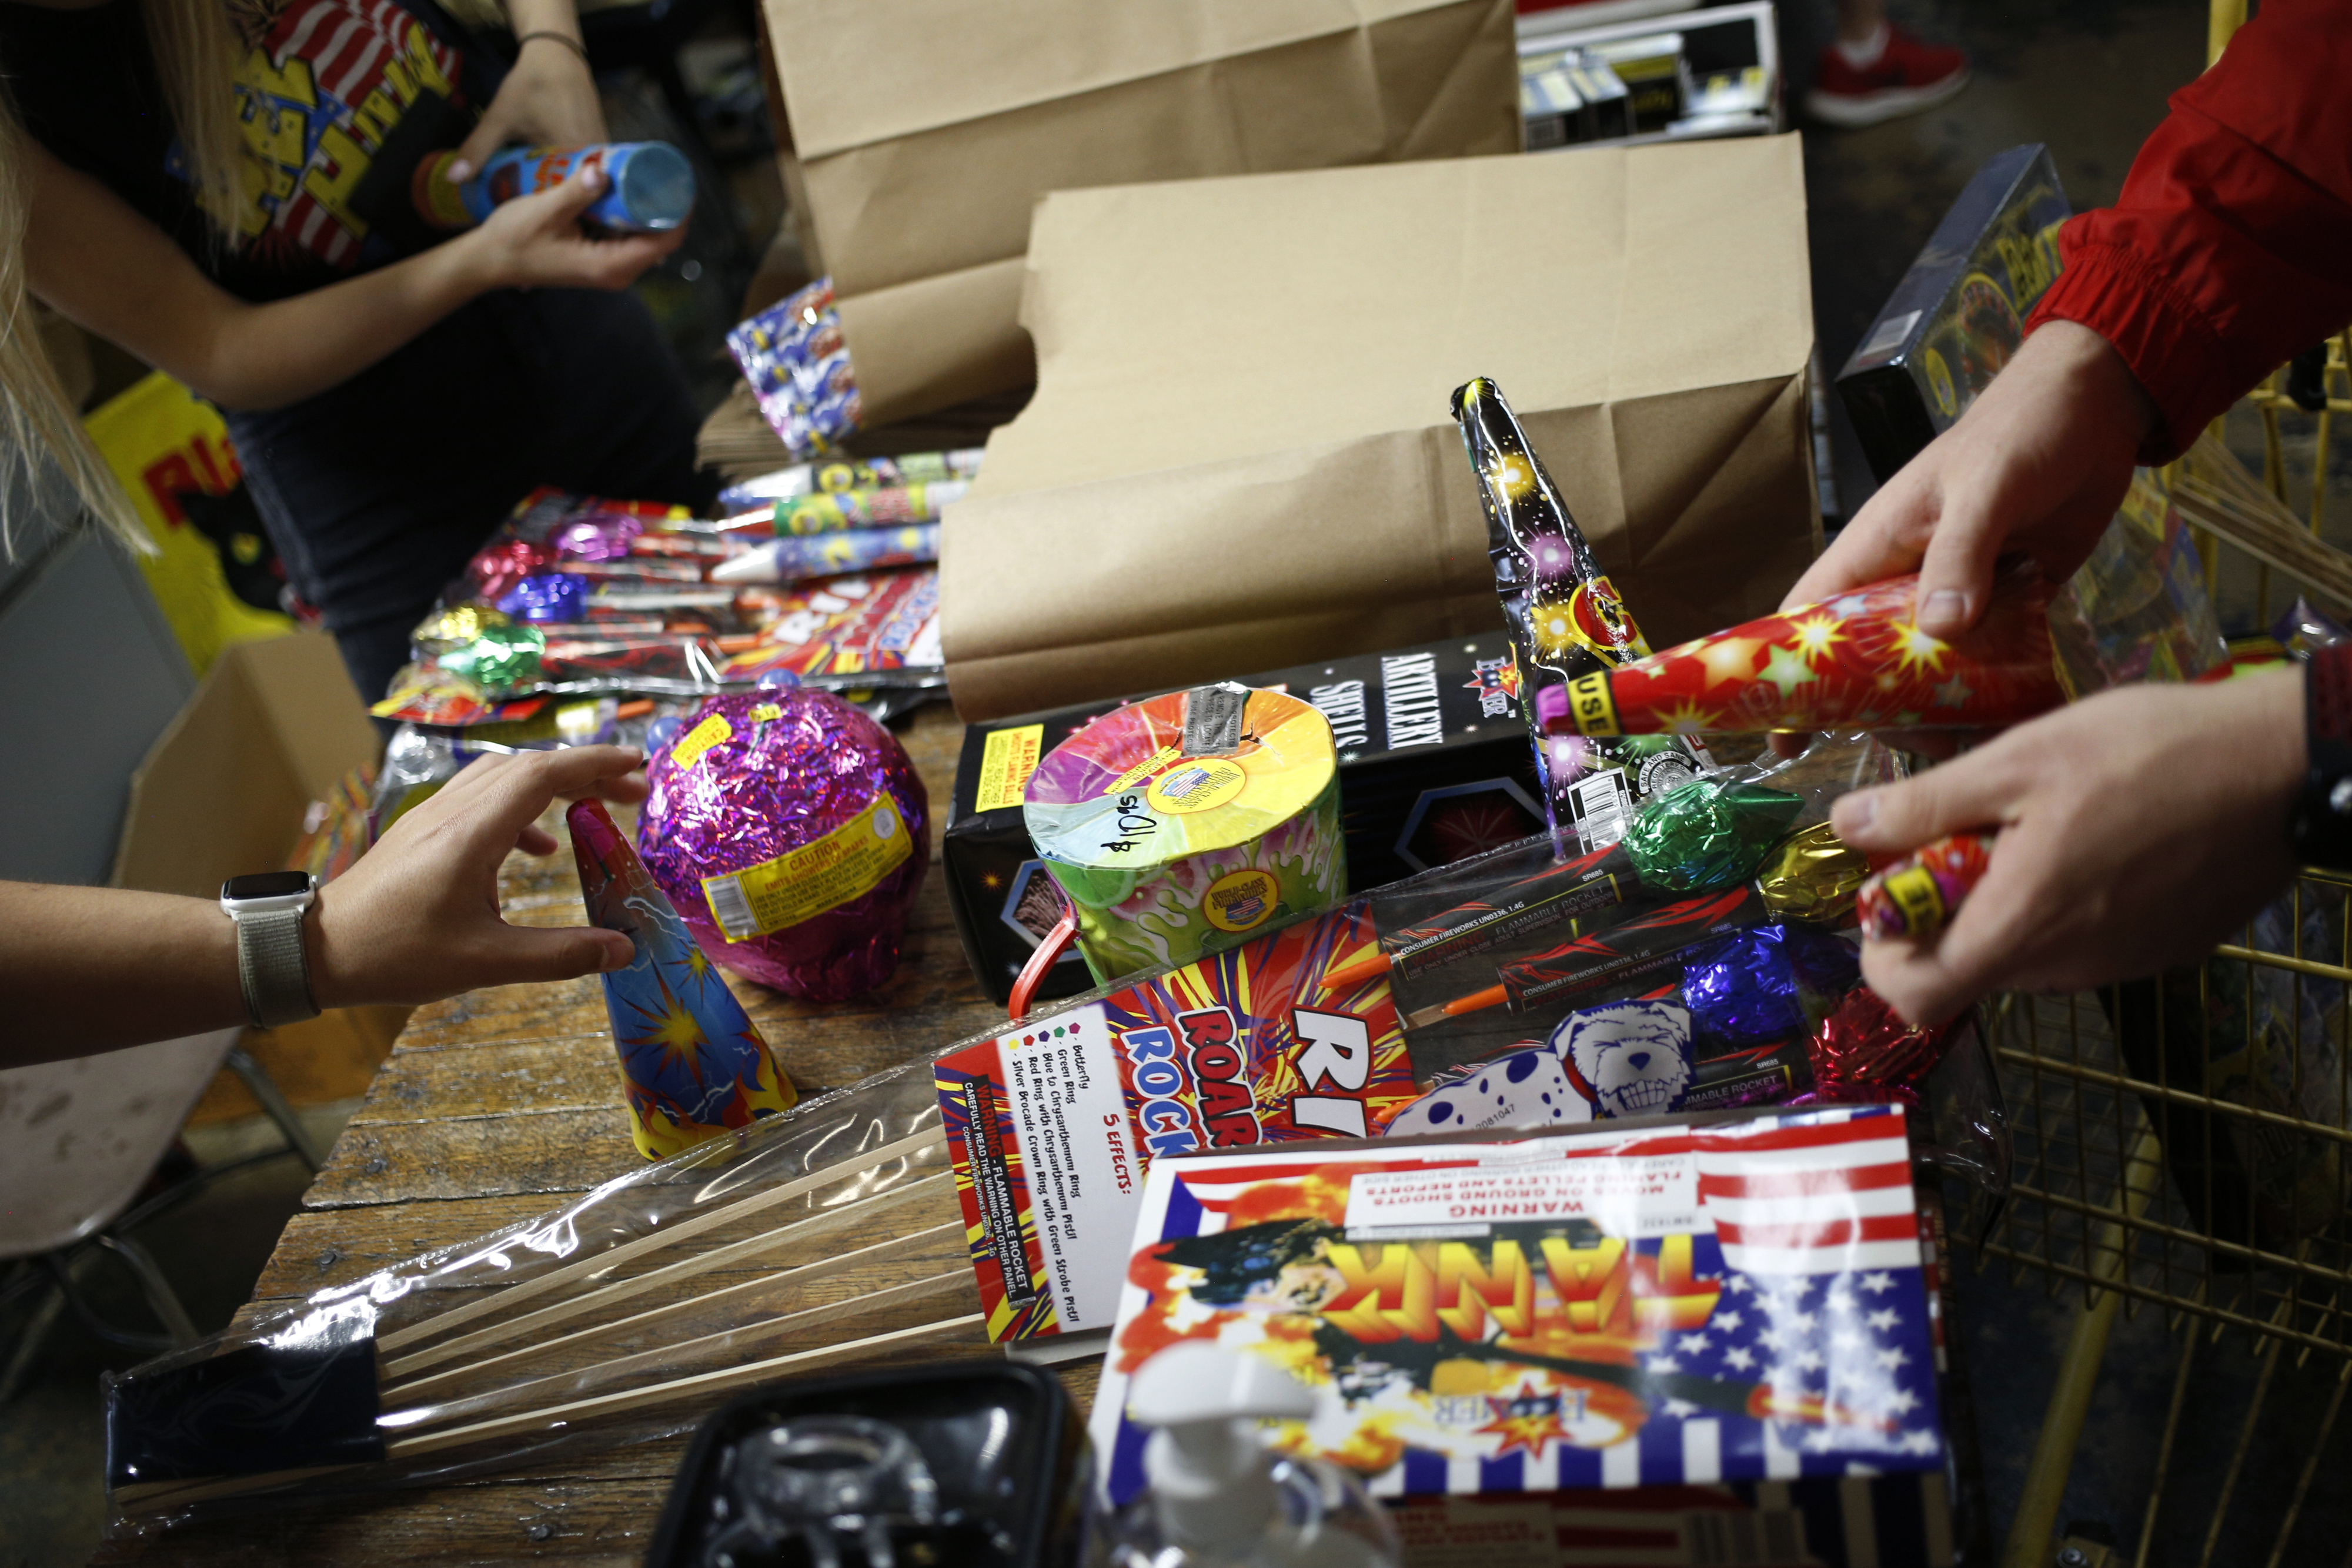 Some consumer fireworks emit high levels of lead and other toxins, a new study finds